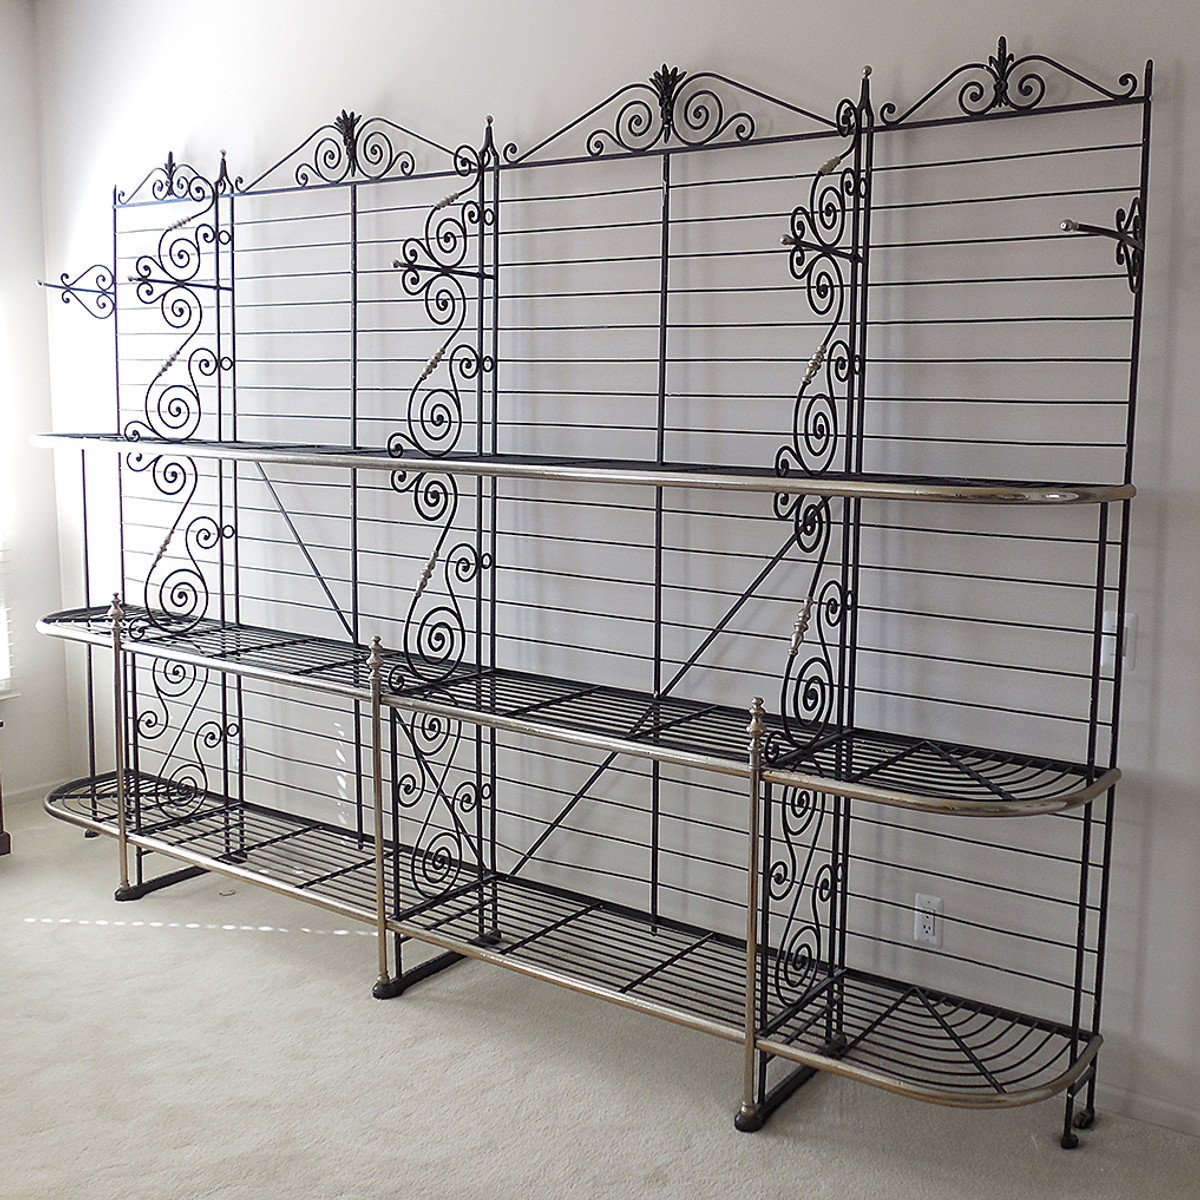 F14028 - Antique Cast Iron and Nickel Oversize French Bakers Rack